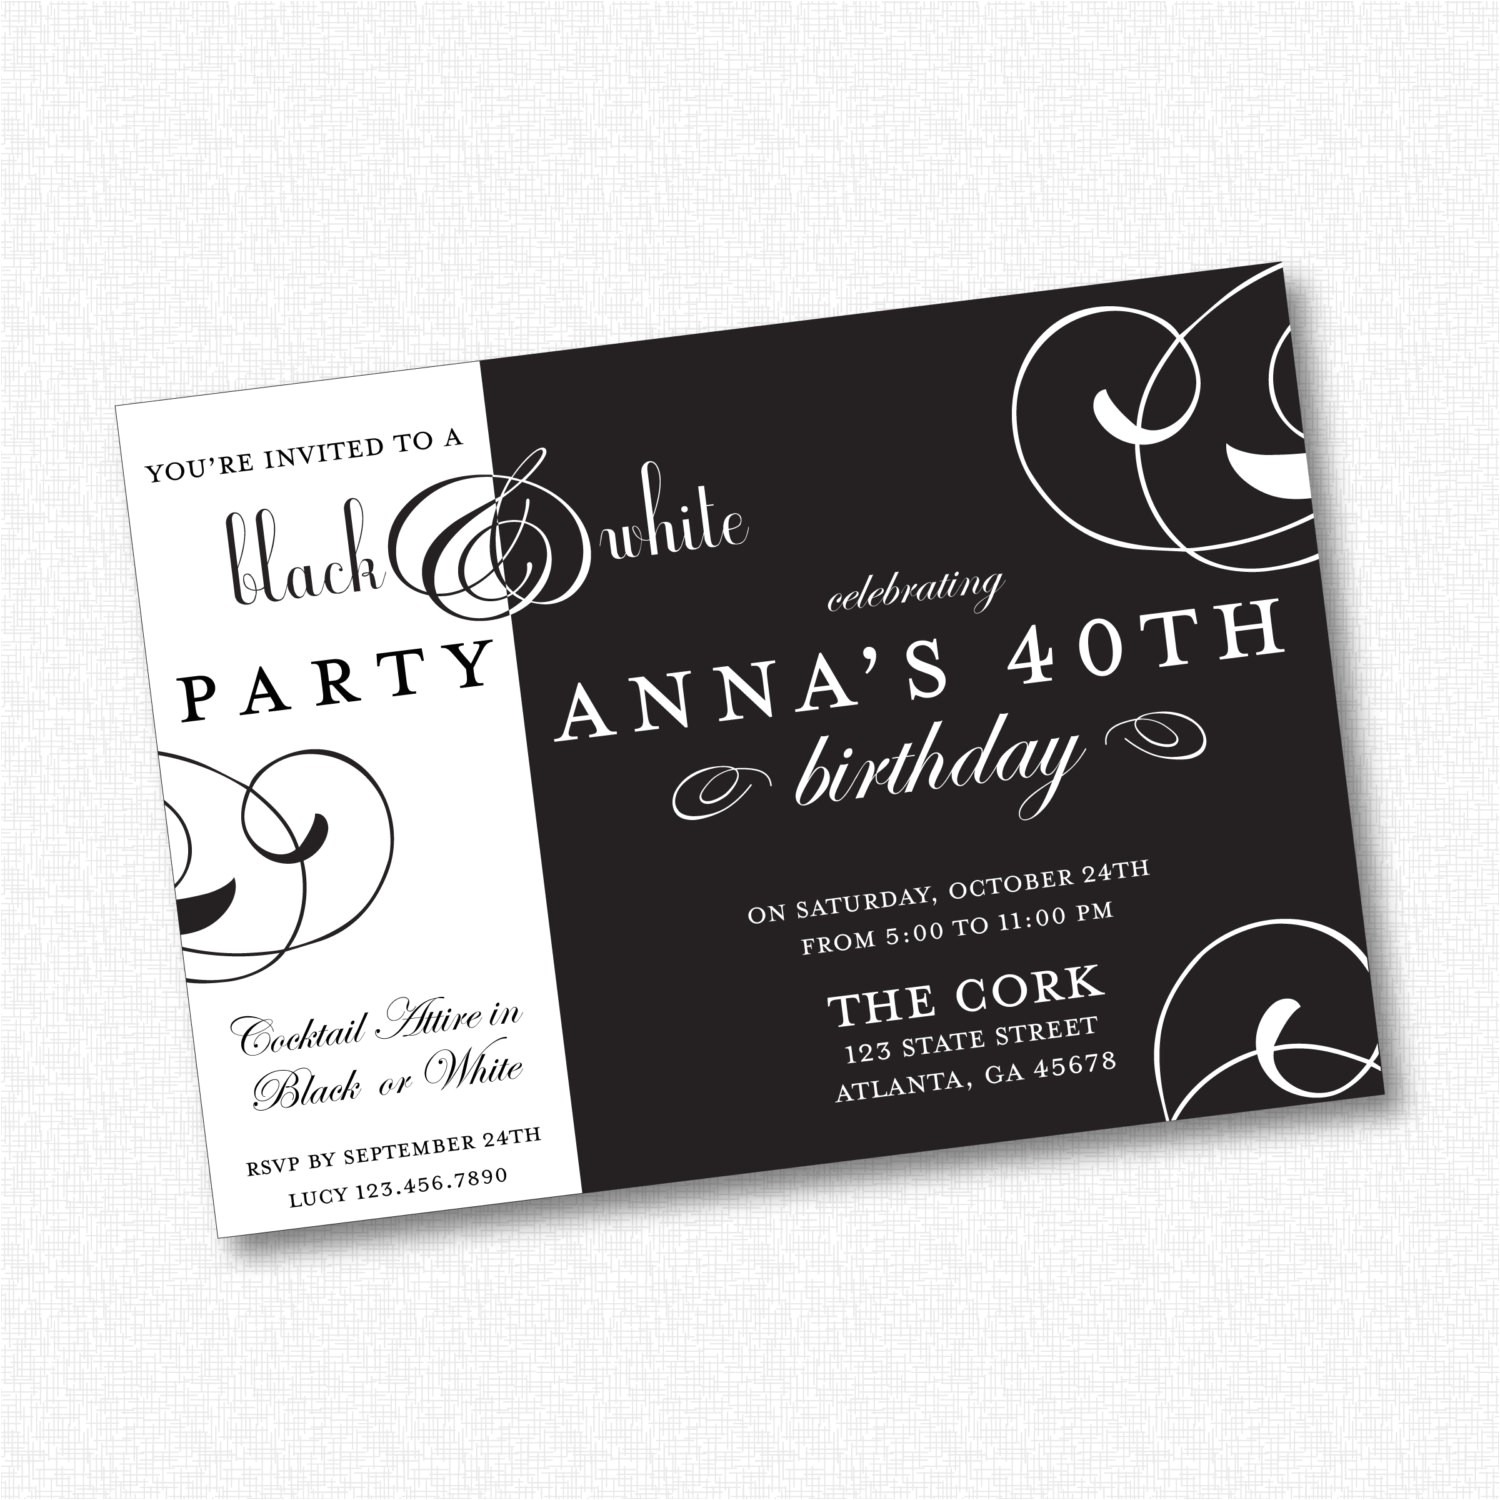 black and white theme party invitations black and white theme party invitation black and white themes